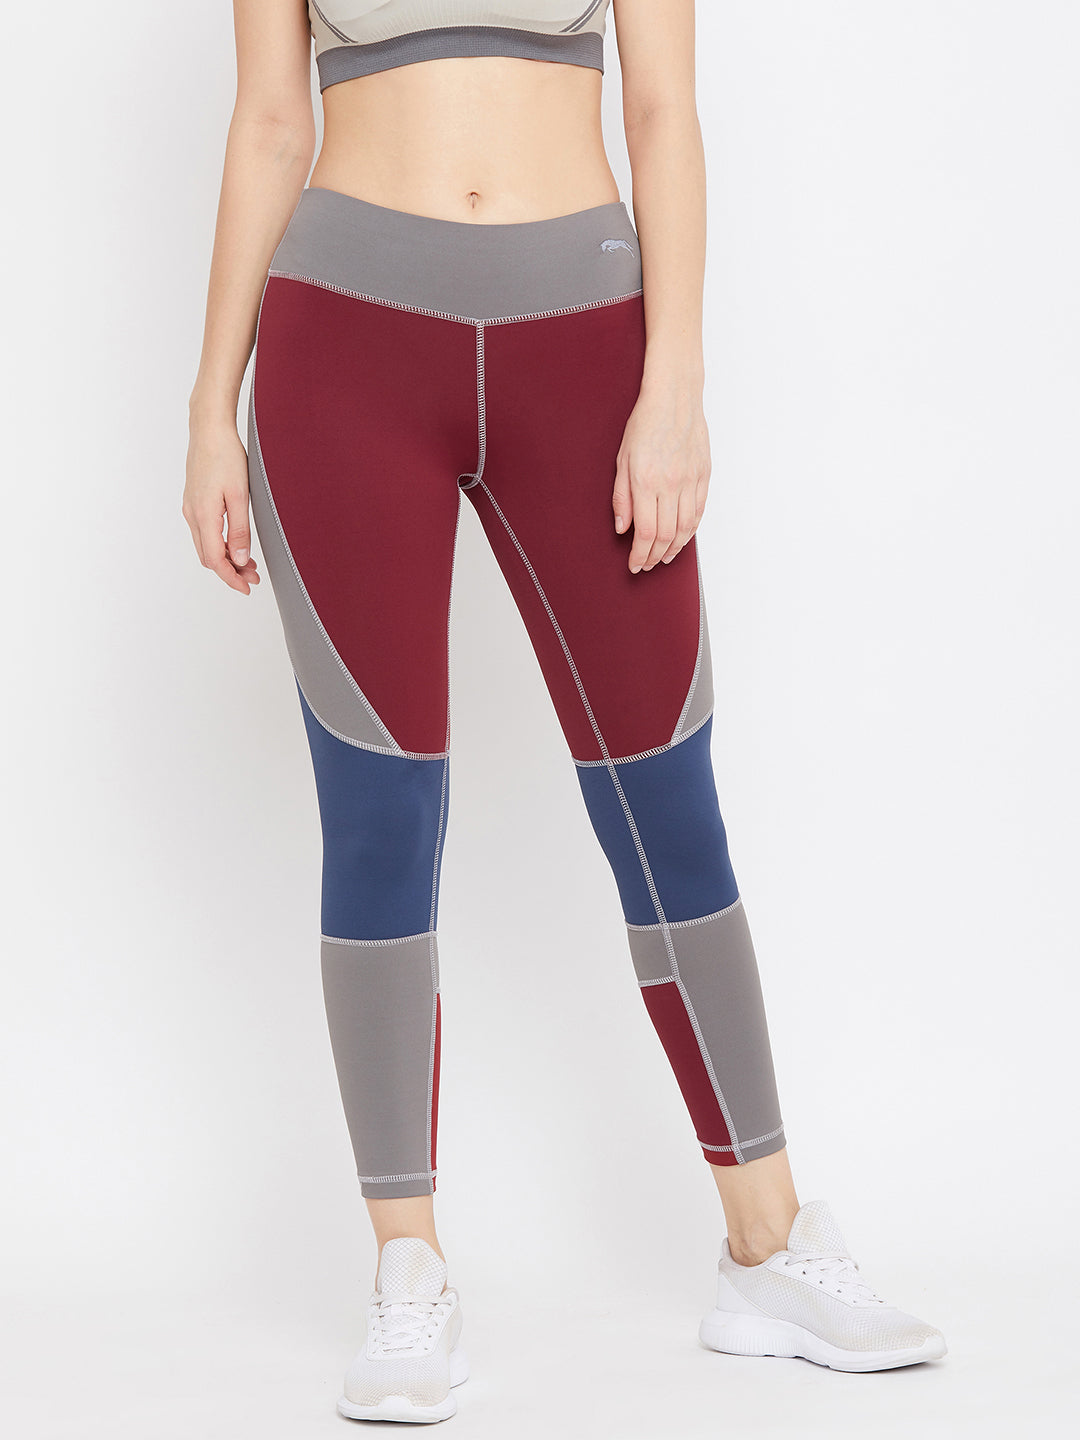 JUMP USA Women Maroon & Blue Colourblock Active Wear Tights